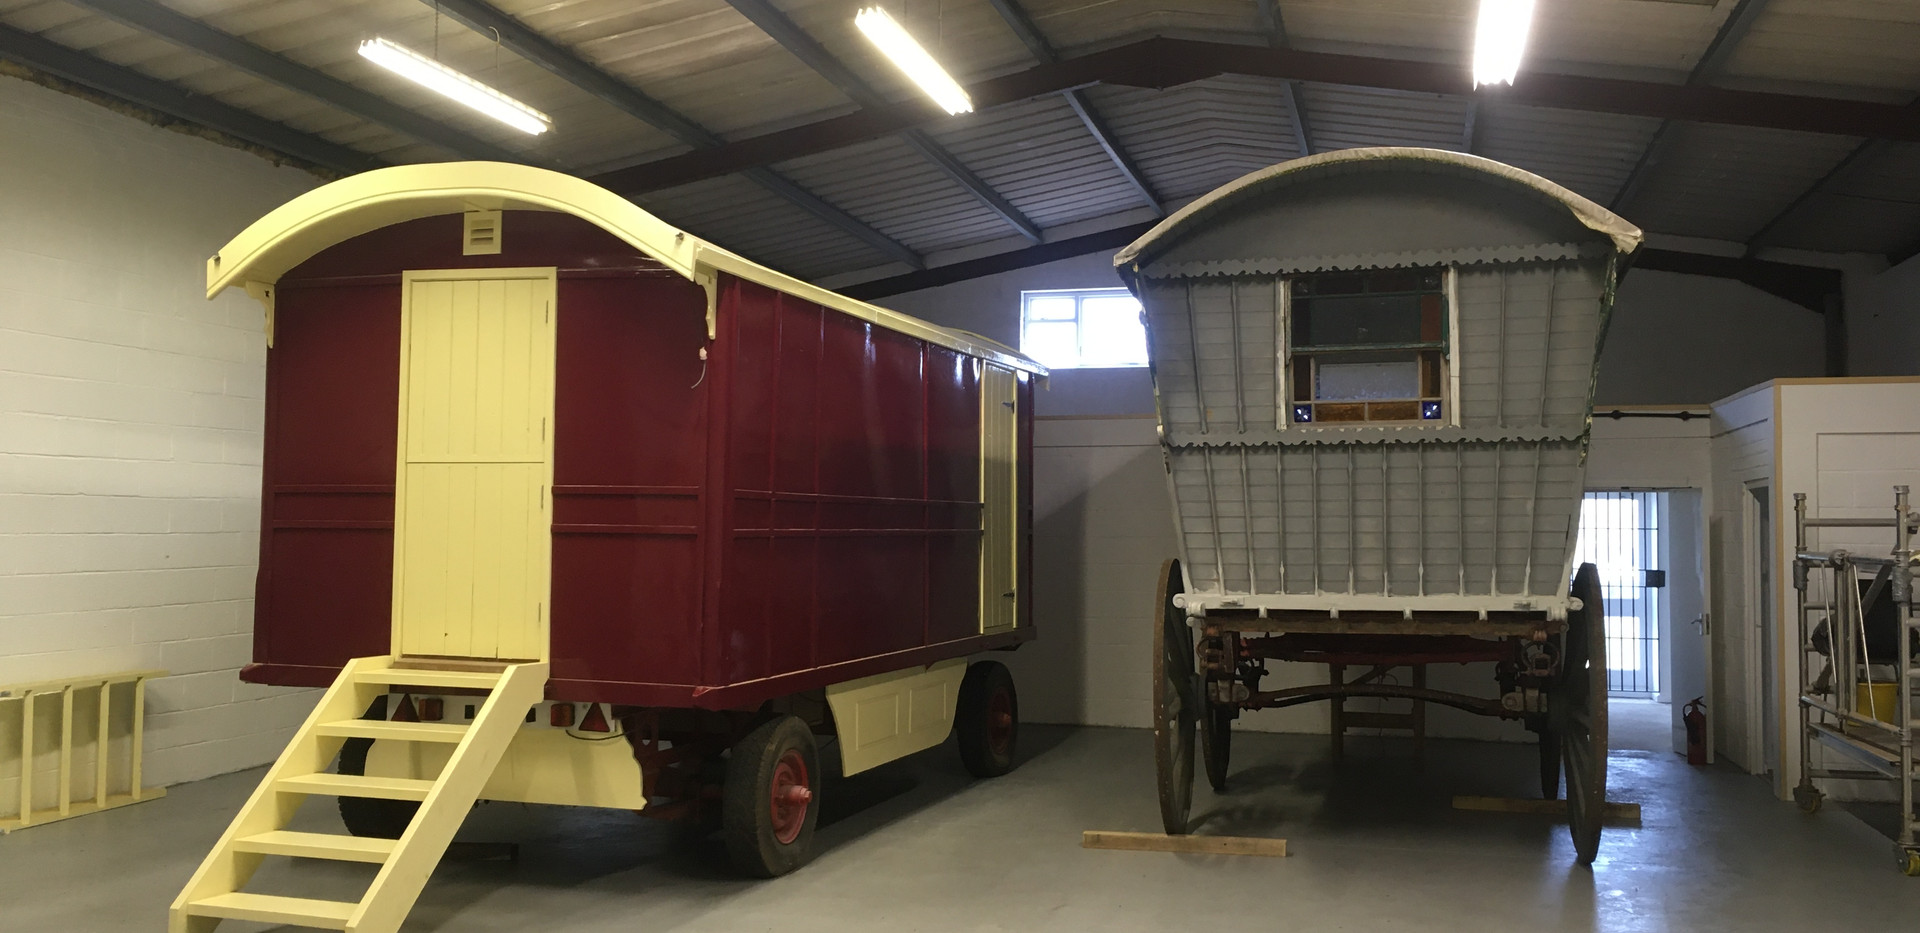 next to our little ex-Gifford's Wagon in the workshop